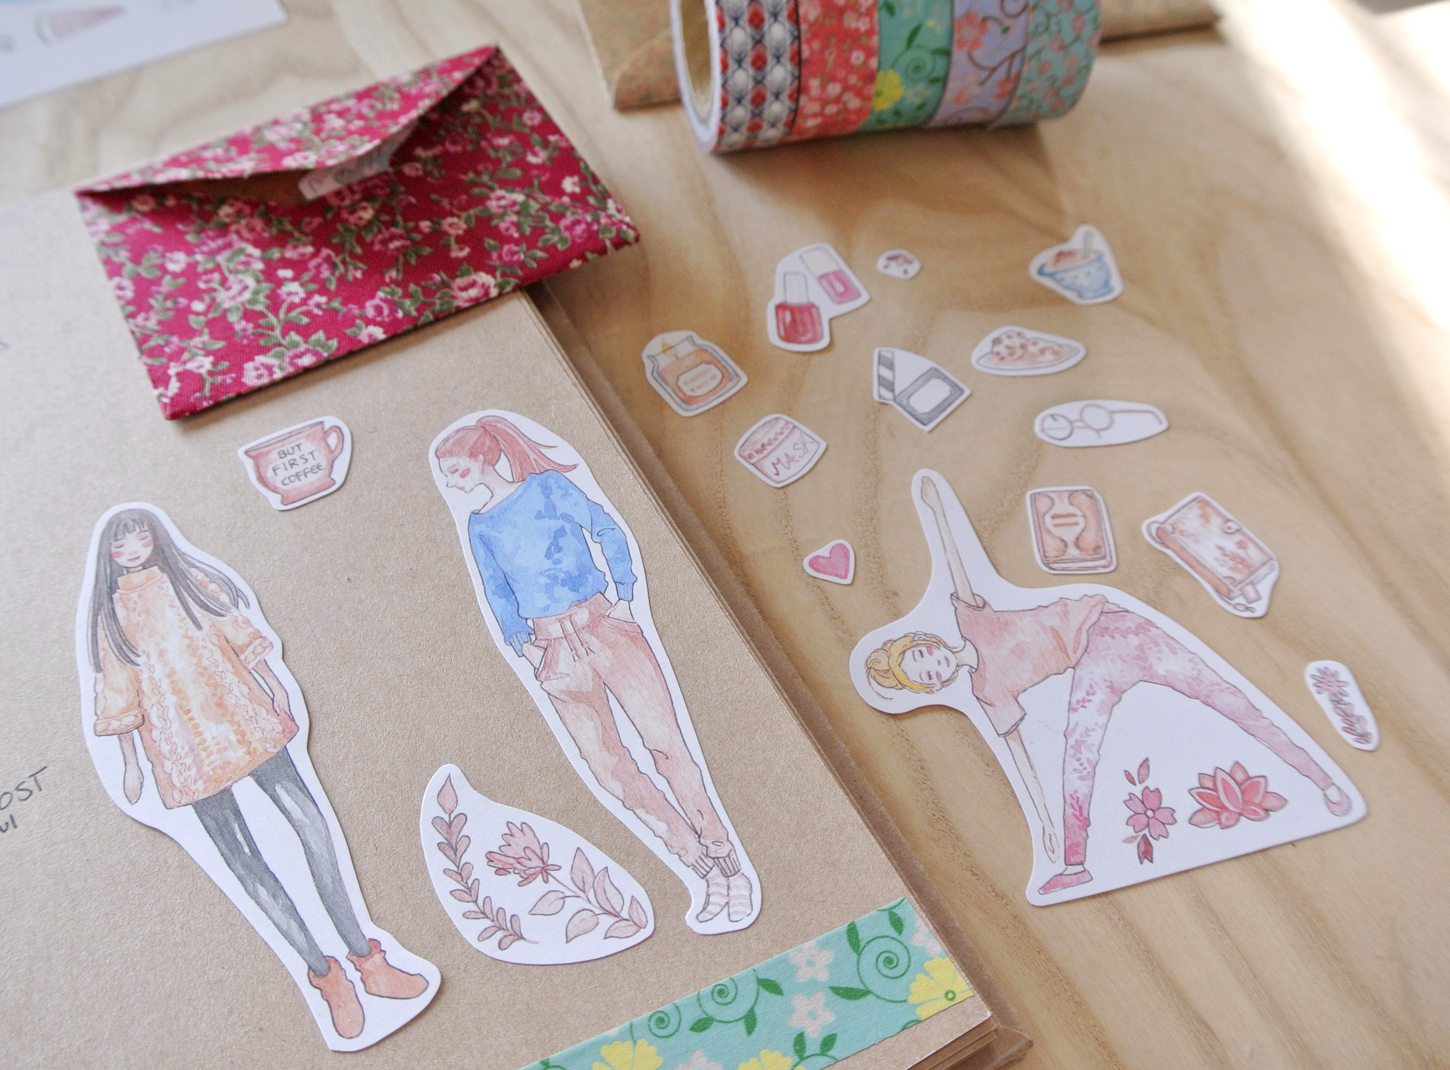 Girl 'lazy day' stickers - yoga, self-care stickers.